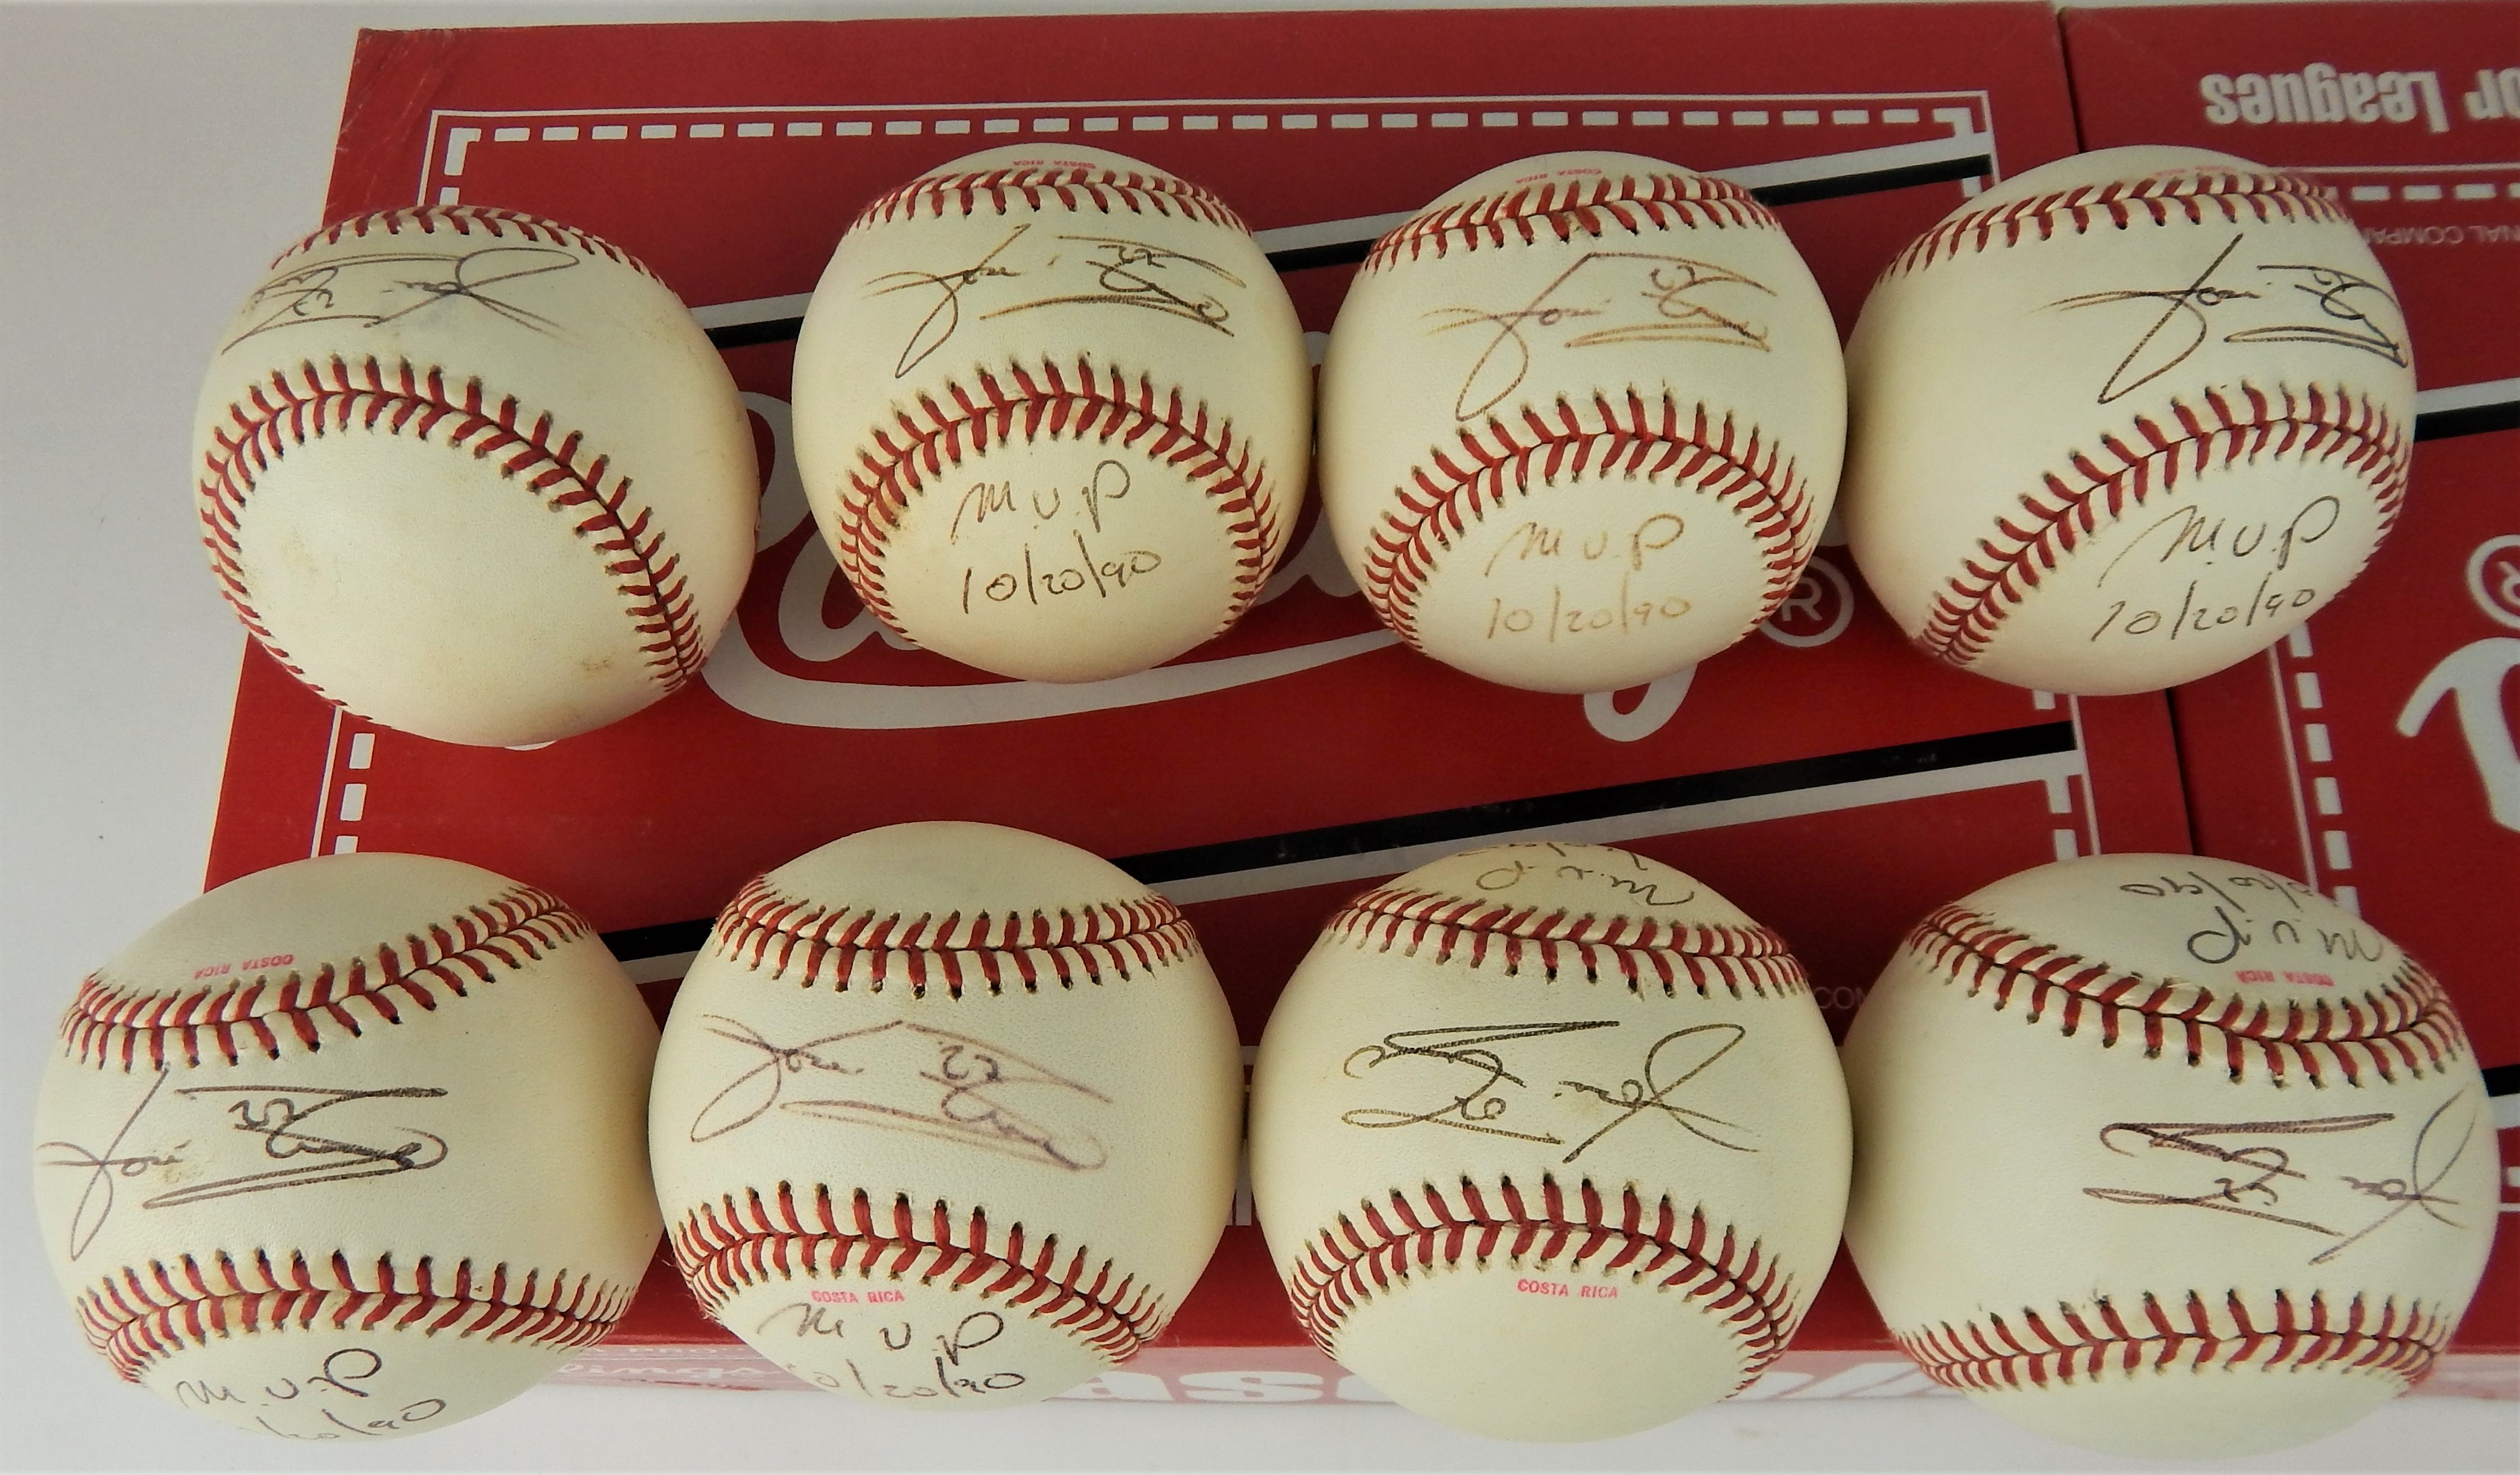 Bernie Stowe Cincinnati Reds Collection - Monthly 10-18